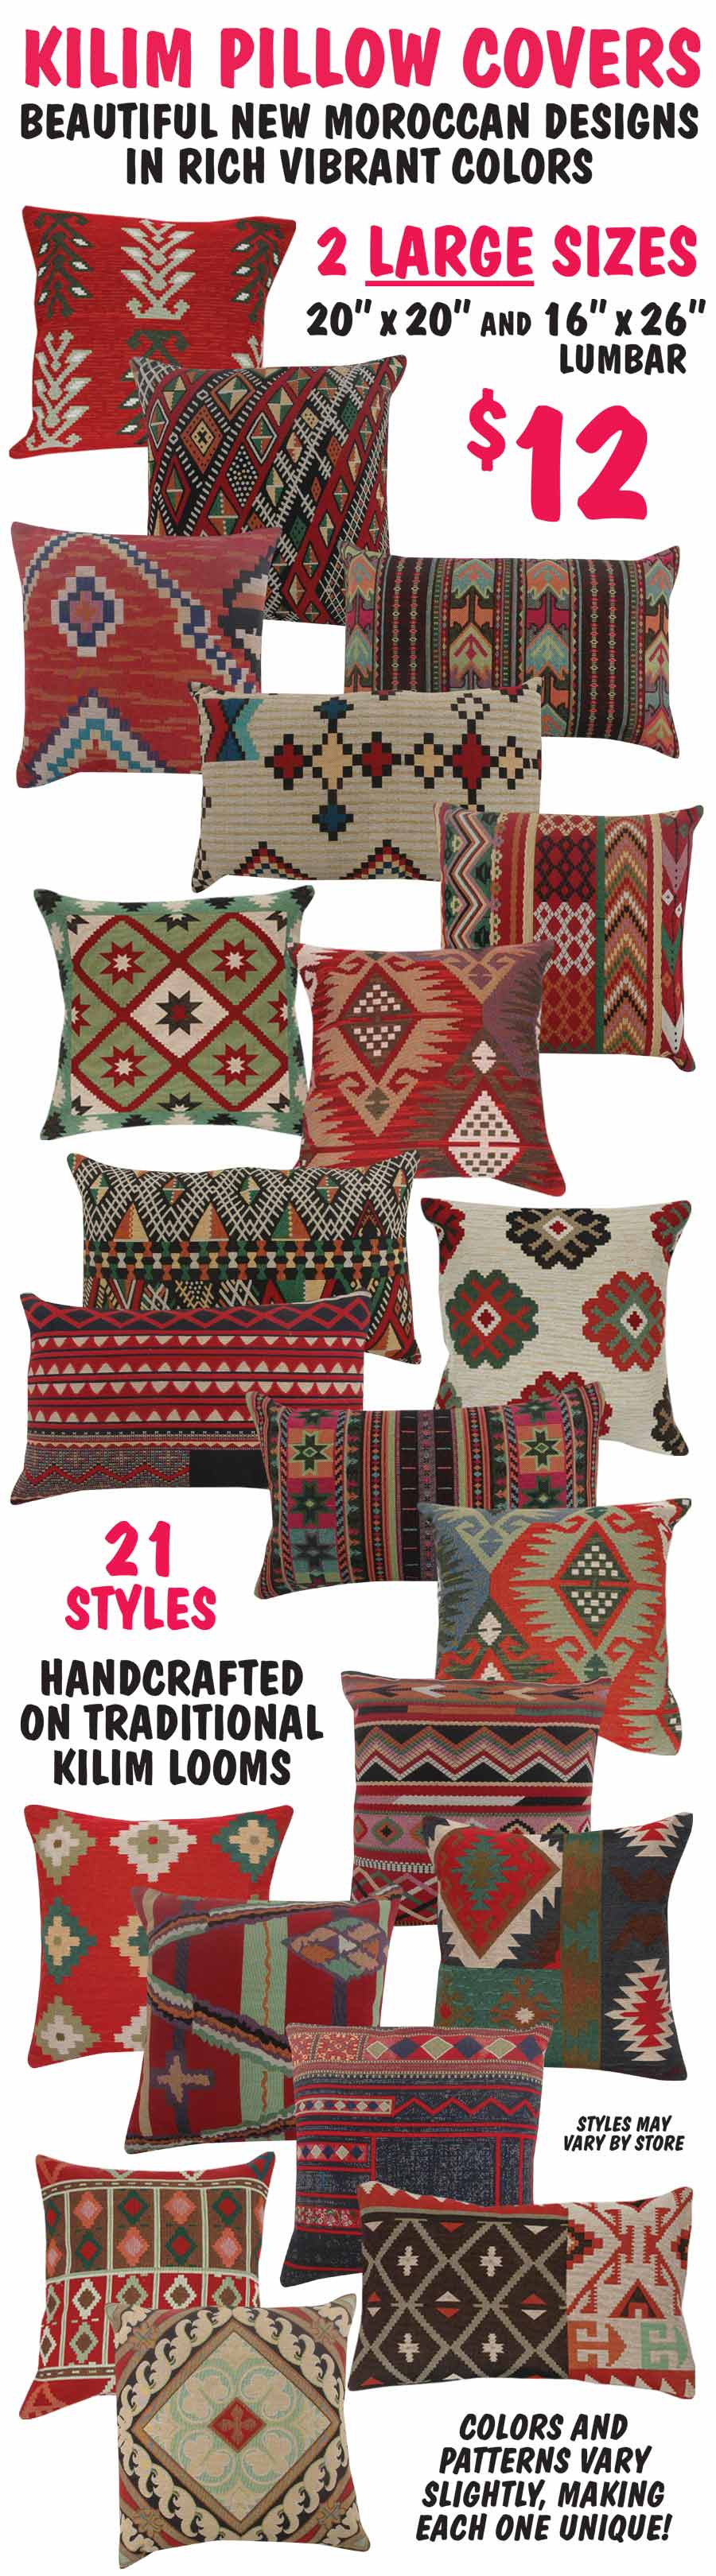 Kilim Pillow Covers 2 Sizes - 21 Styles - $12